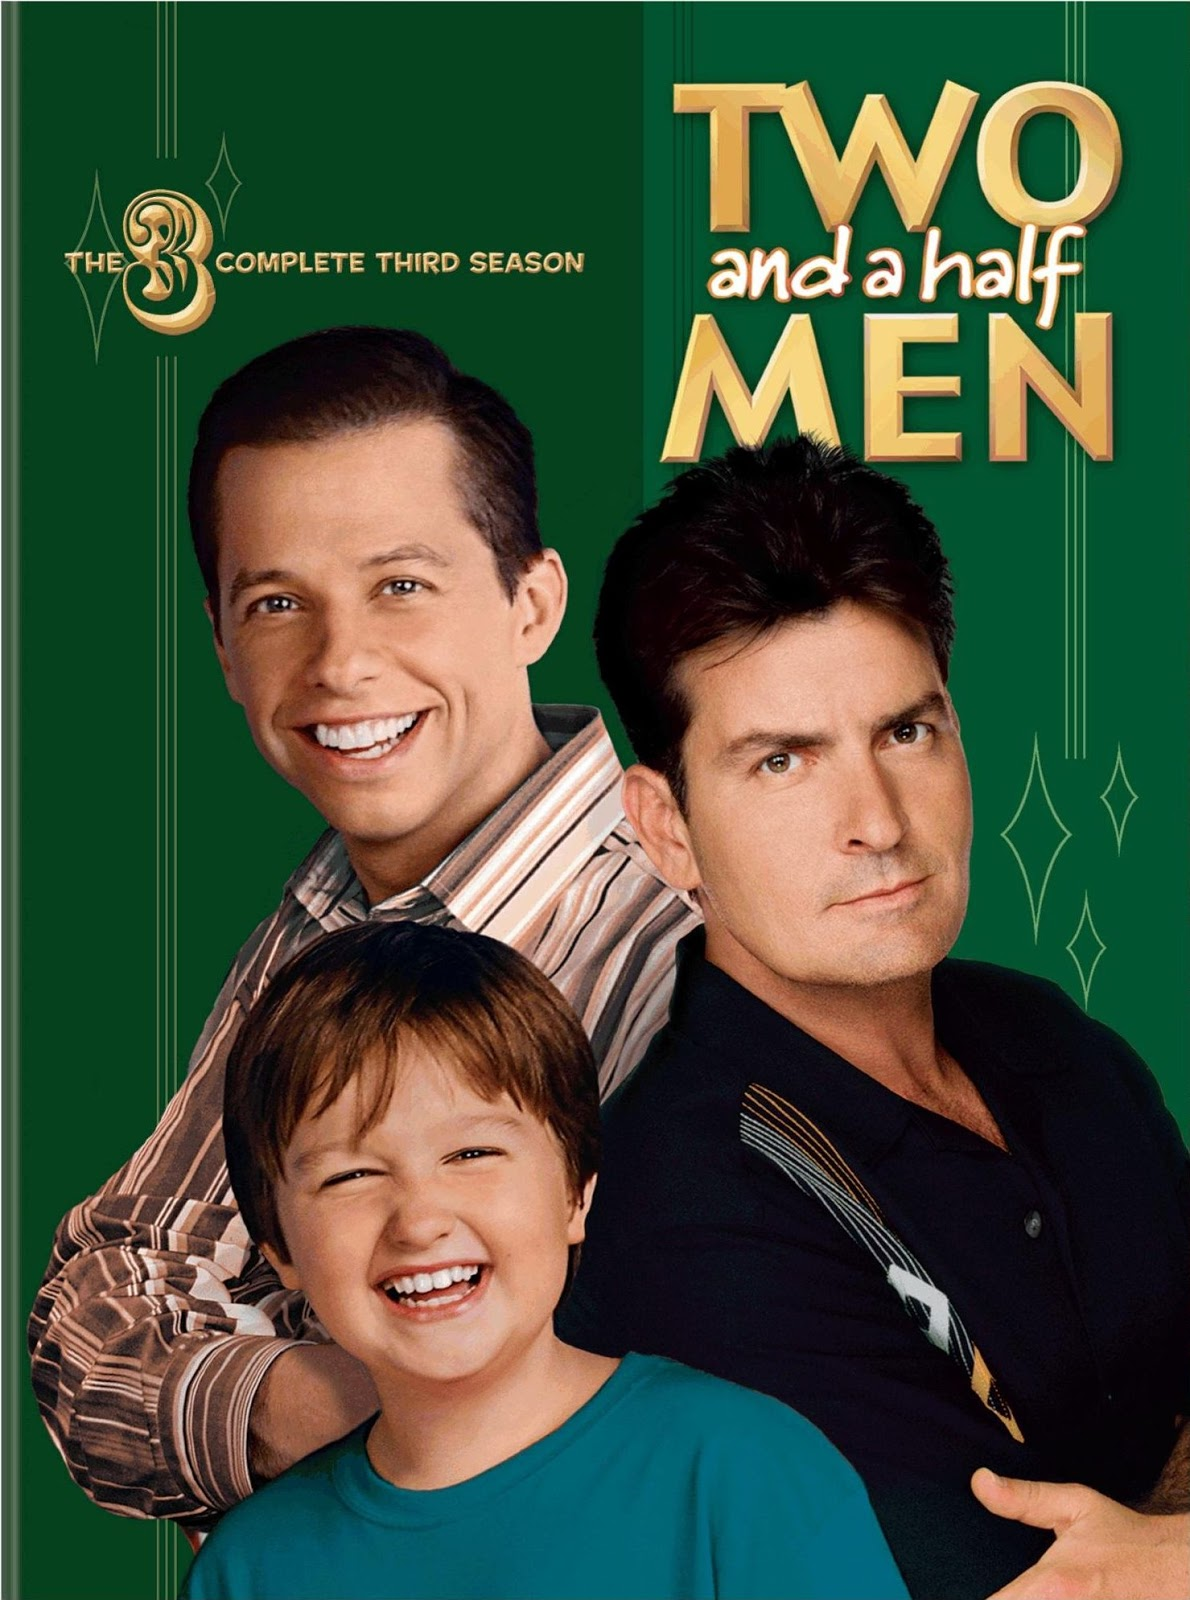 Two and a Half Men Season 3 Poster